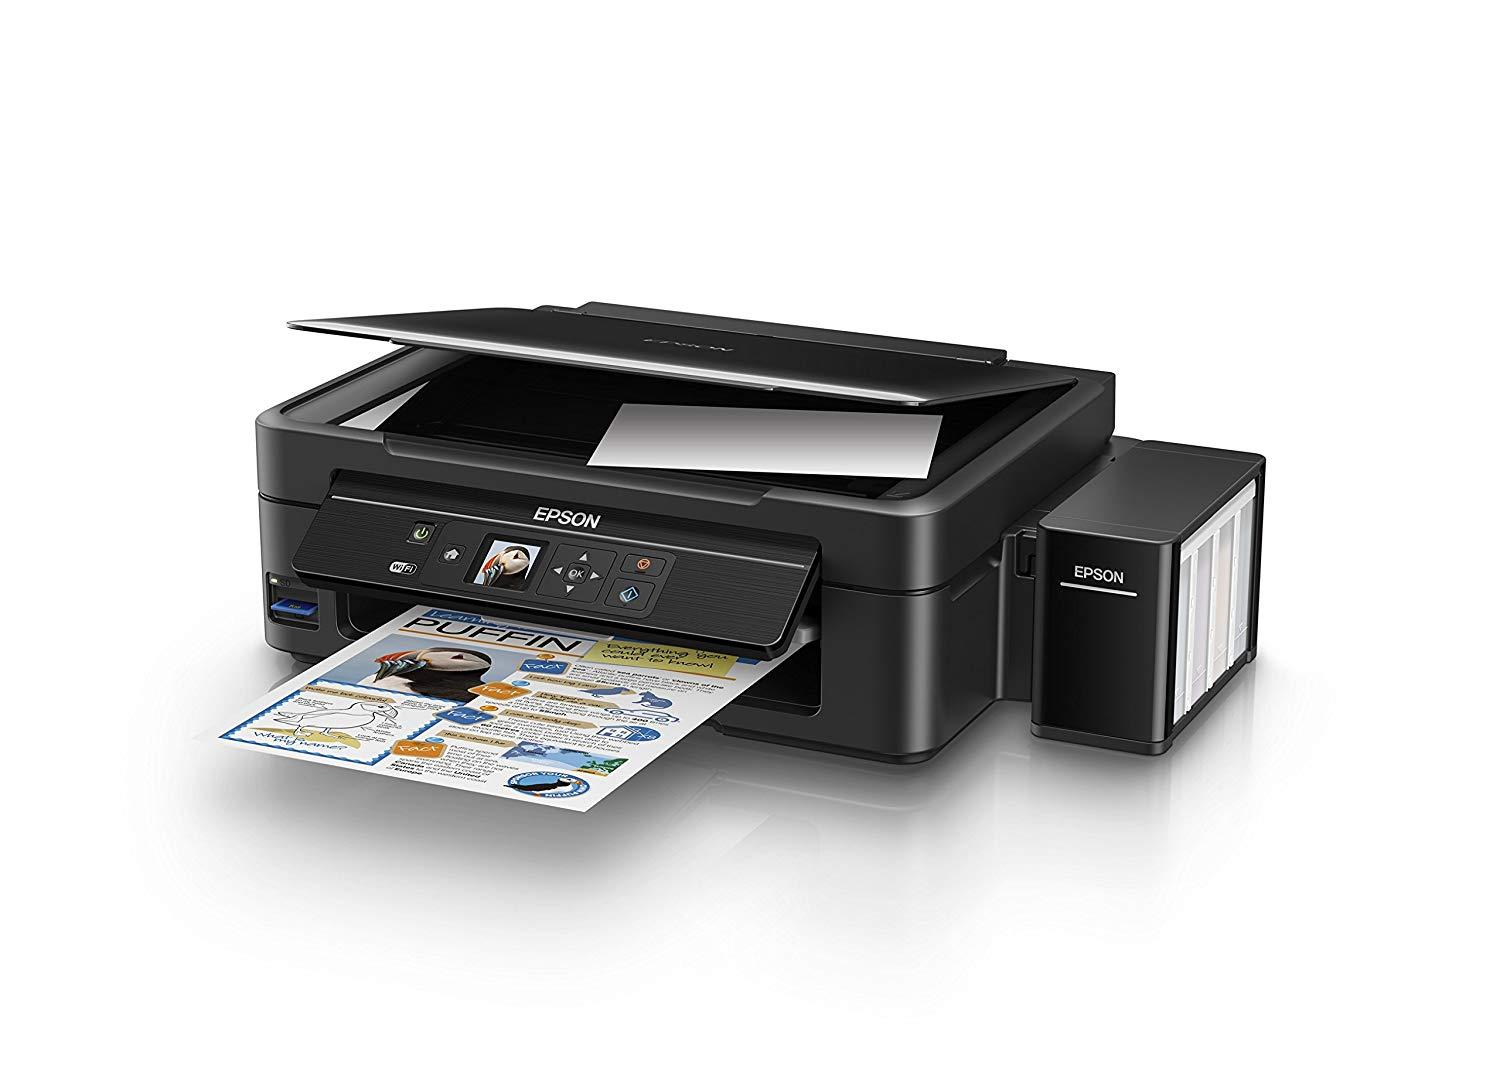 A3000 COLOR PRINT/COPY/SCAN ALL-IN-ONE PRINTER DRIVER FOR WINDOWS 8